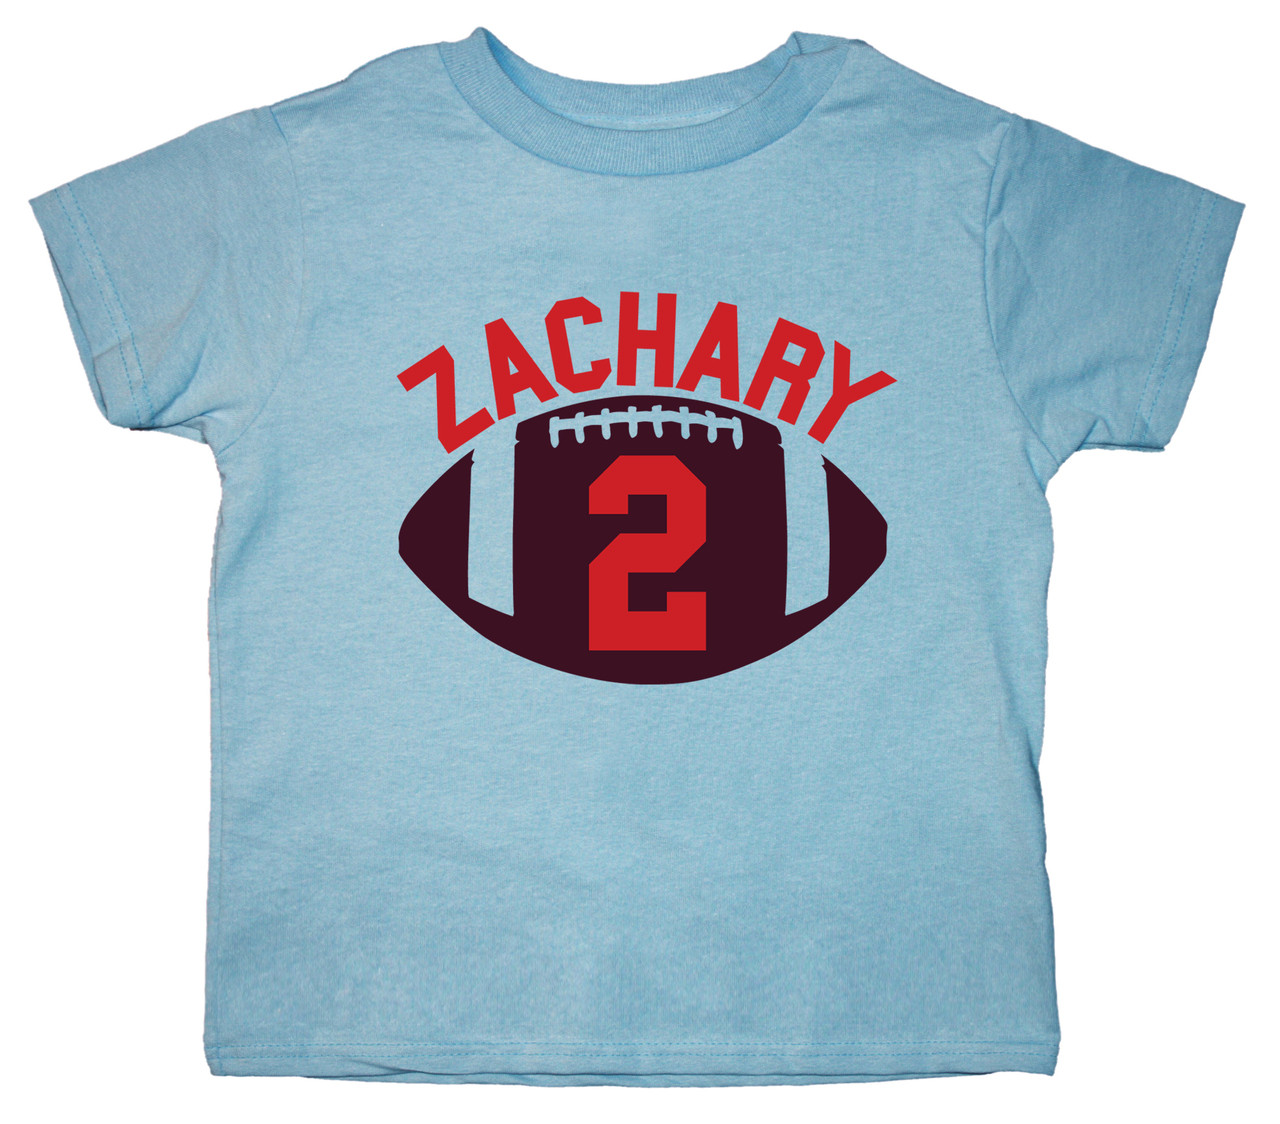 Football shirt on light blue tee